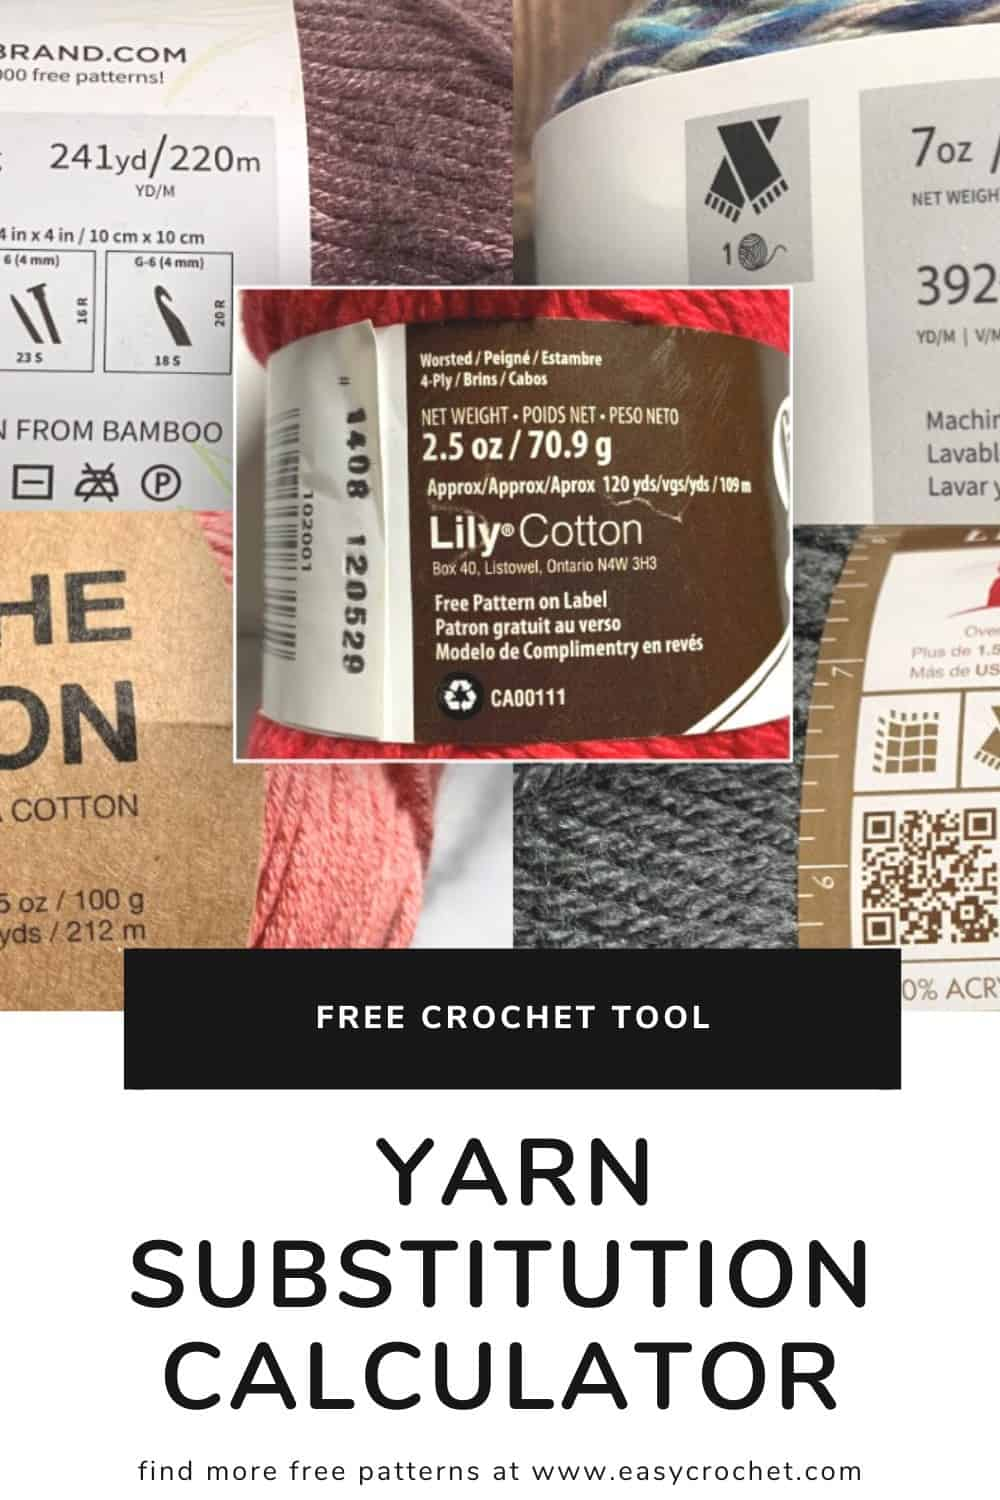 Yarn Skein Substitution Calculator via @easycrochetcom